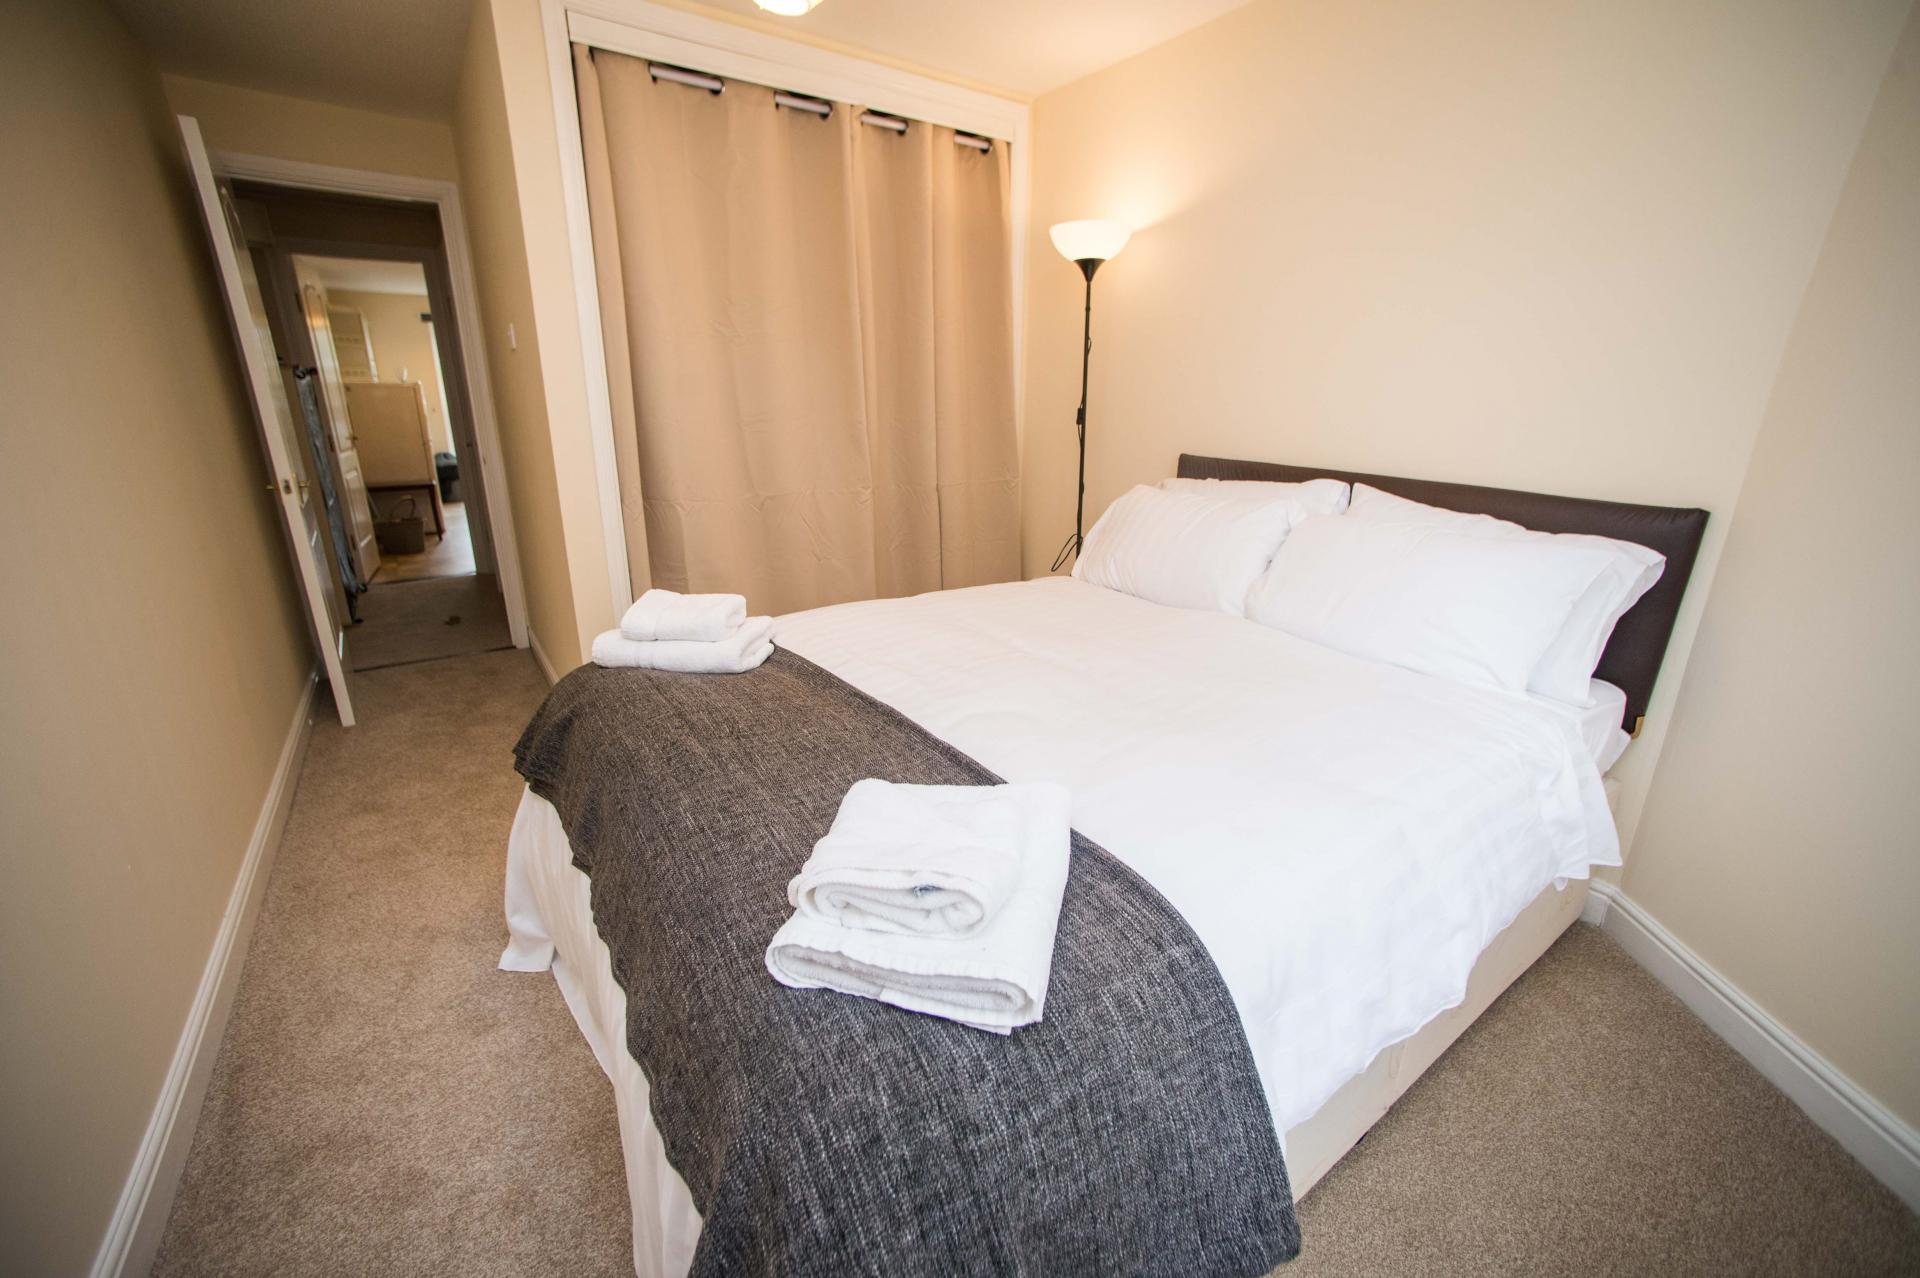 Double Bedroom at Glasgow Finnieston Apartment, Finnieston, Glasgow - Citybase Apartments